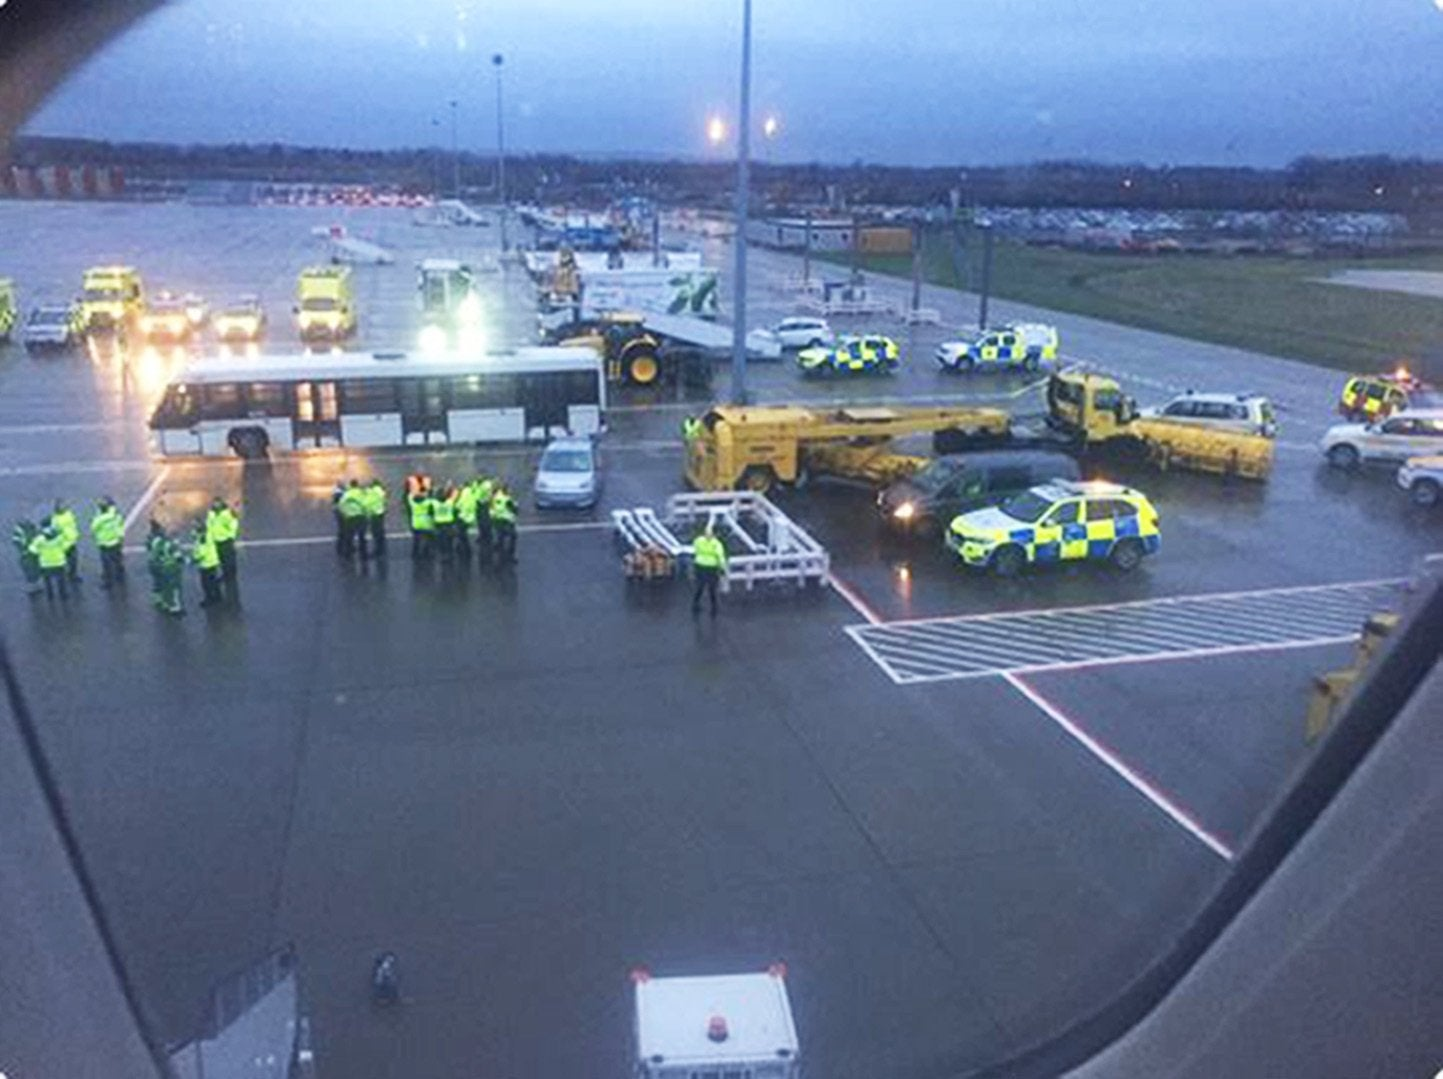 Virgin Atlantic flight quarantined: All passengers and crew placed in isolation after landing at London Gatwick